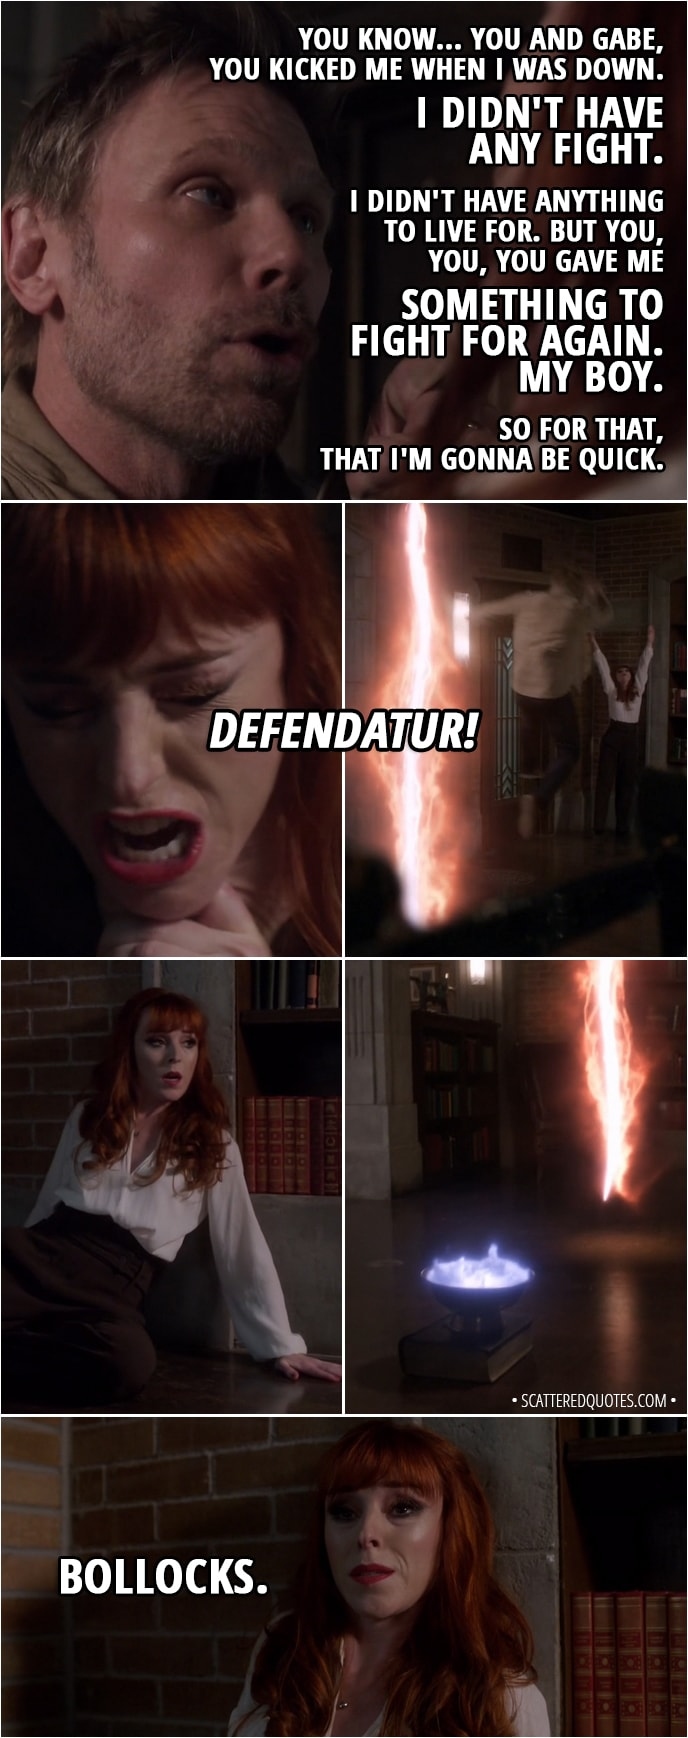 Quote from Supernatural 13x21 - Lucifer: You know... you and Gabe, you kicked me when I was down. I didn't have any fight. I didn't have anything to live for. But you, you, you gave me something to fight for again. My boy. So for that, that I'm gonna be quick. Rowena: Defendatur! (the spell throws Lucifer backwards right through the rift) Bollocks.